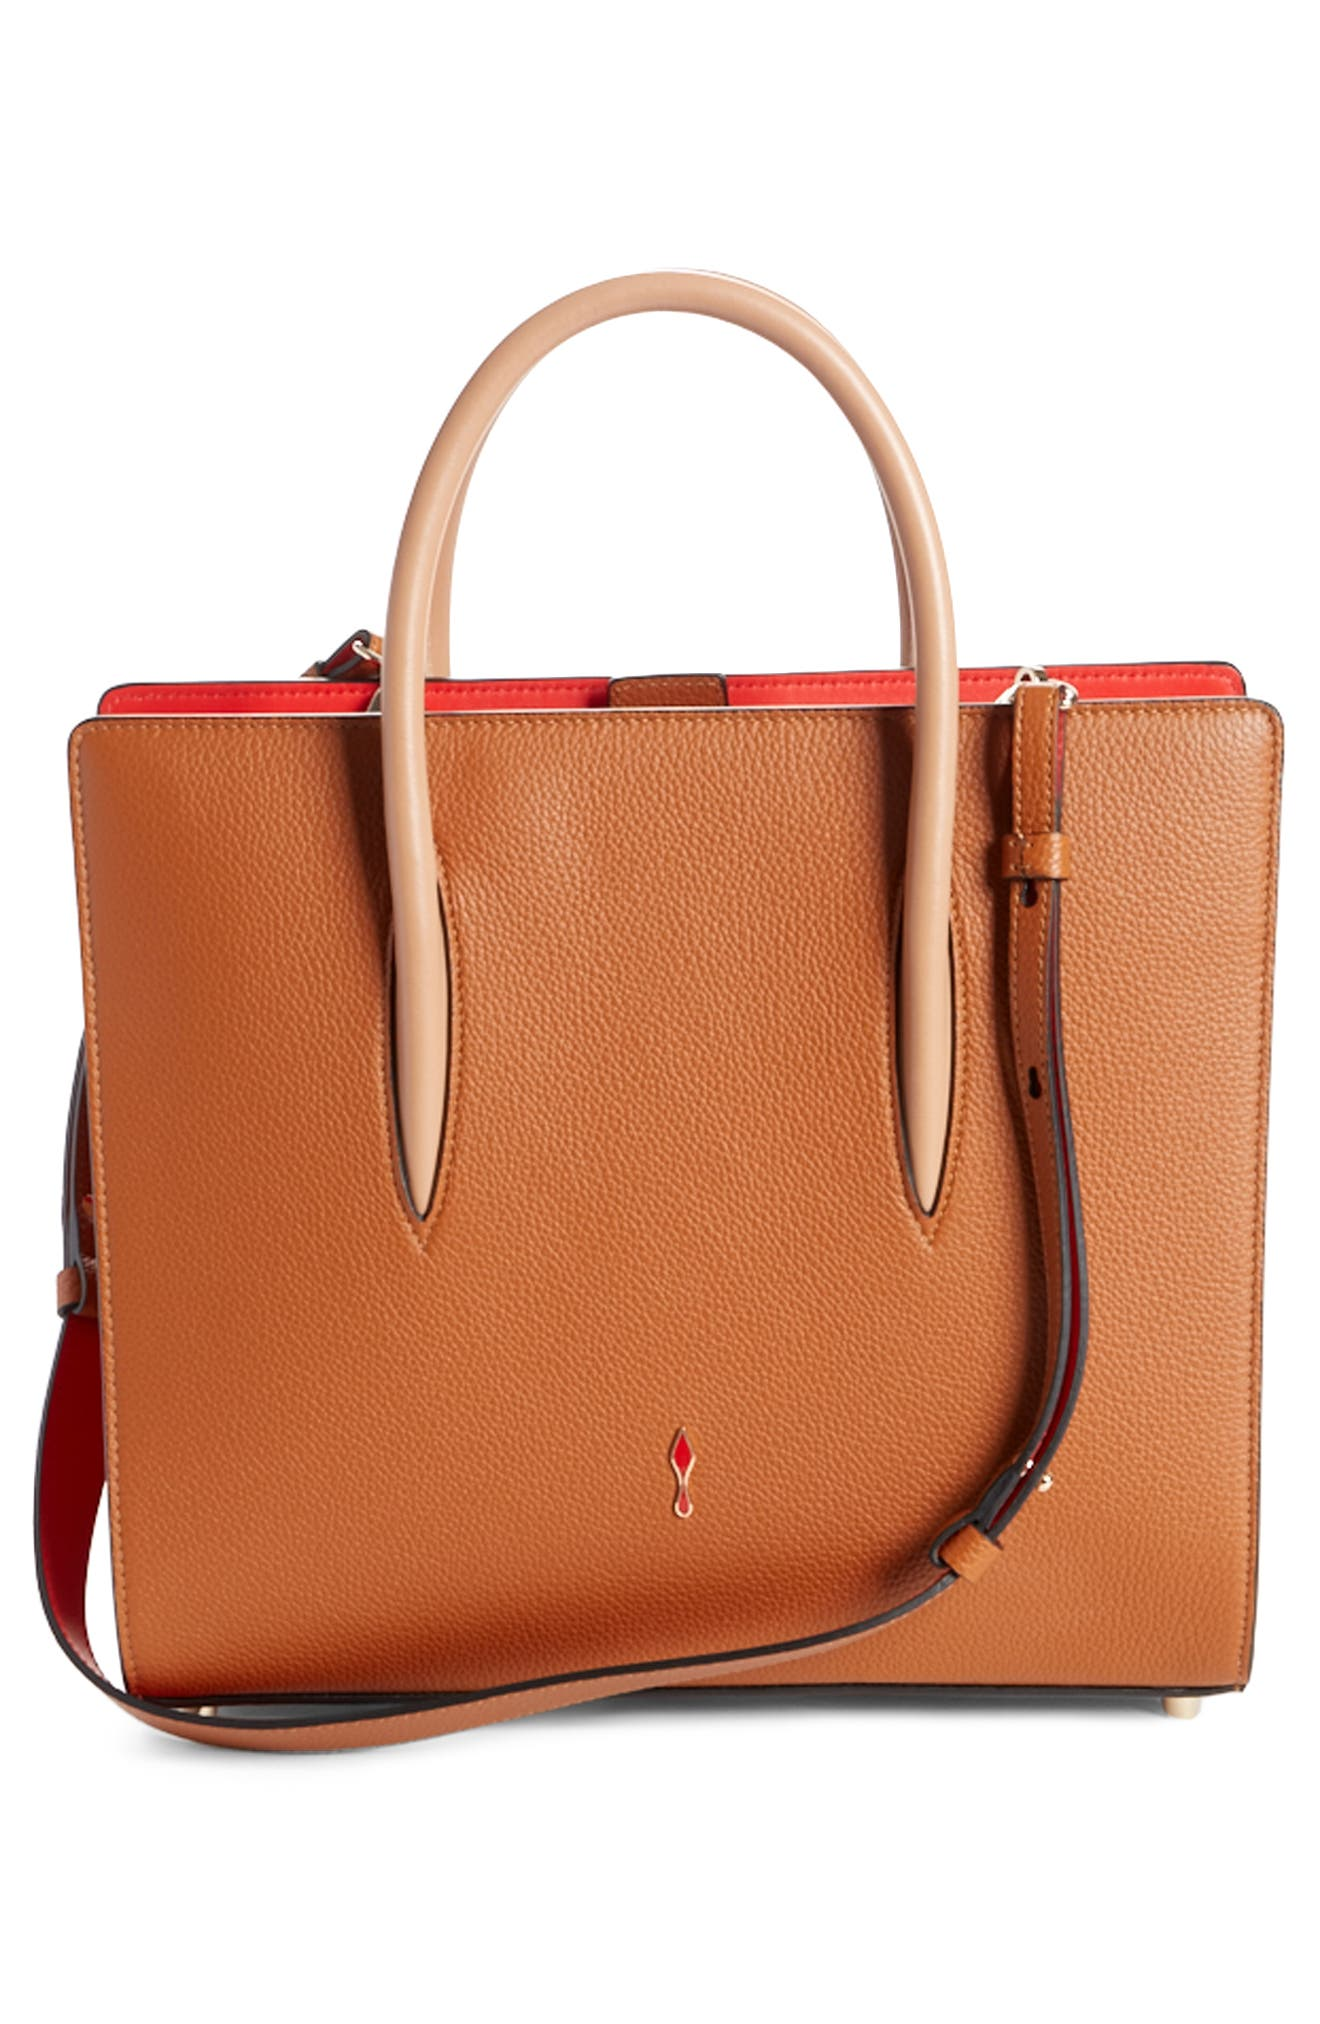 Medium Paloma Loubiwoodstock V Suede & Leather Tote,                             Alternate thumbnail 2, color,                             Cannelle/ Cannelle